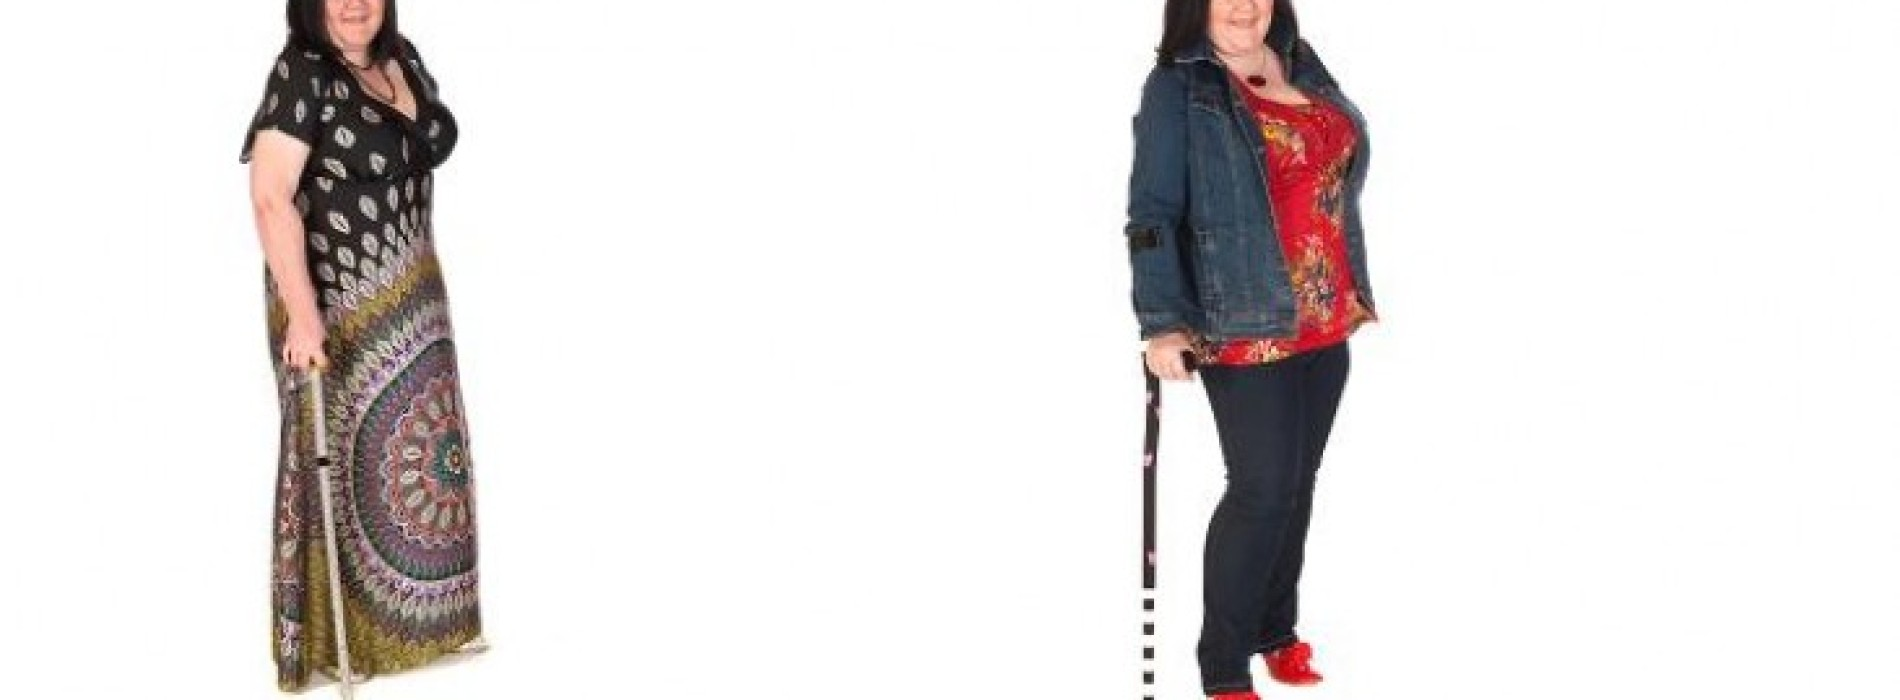 GlamSticks: the story of these designer mobility aids